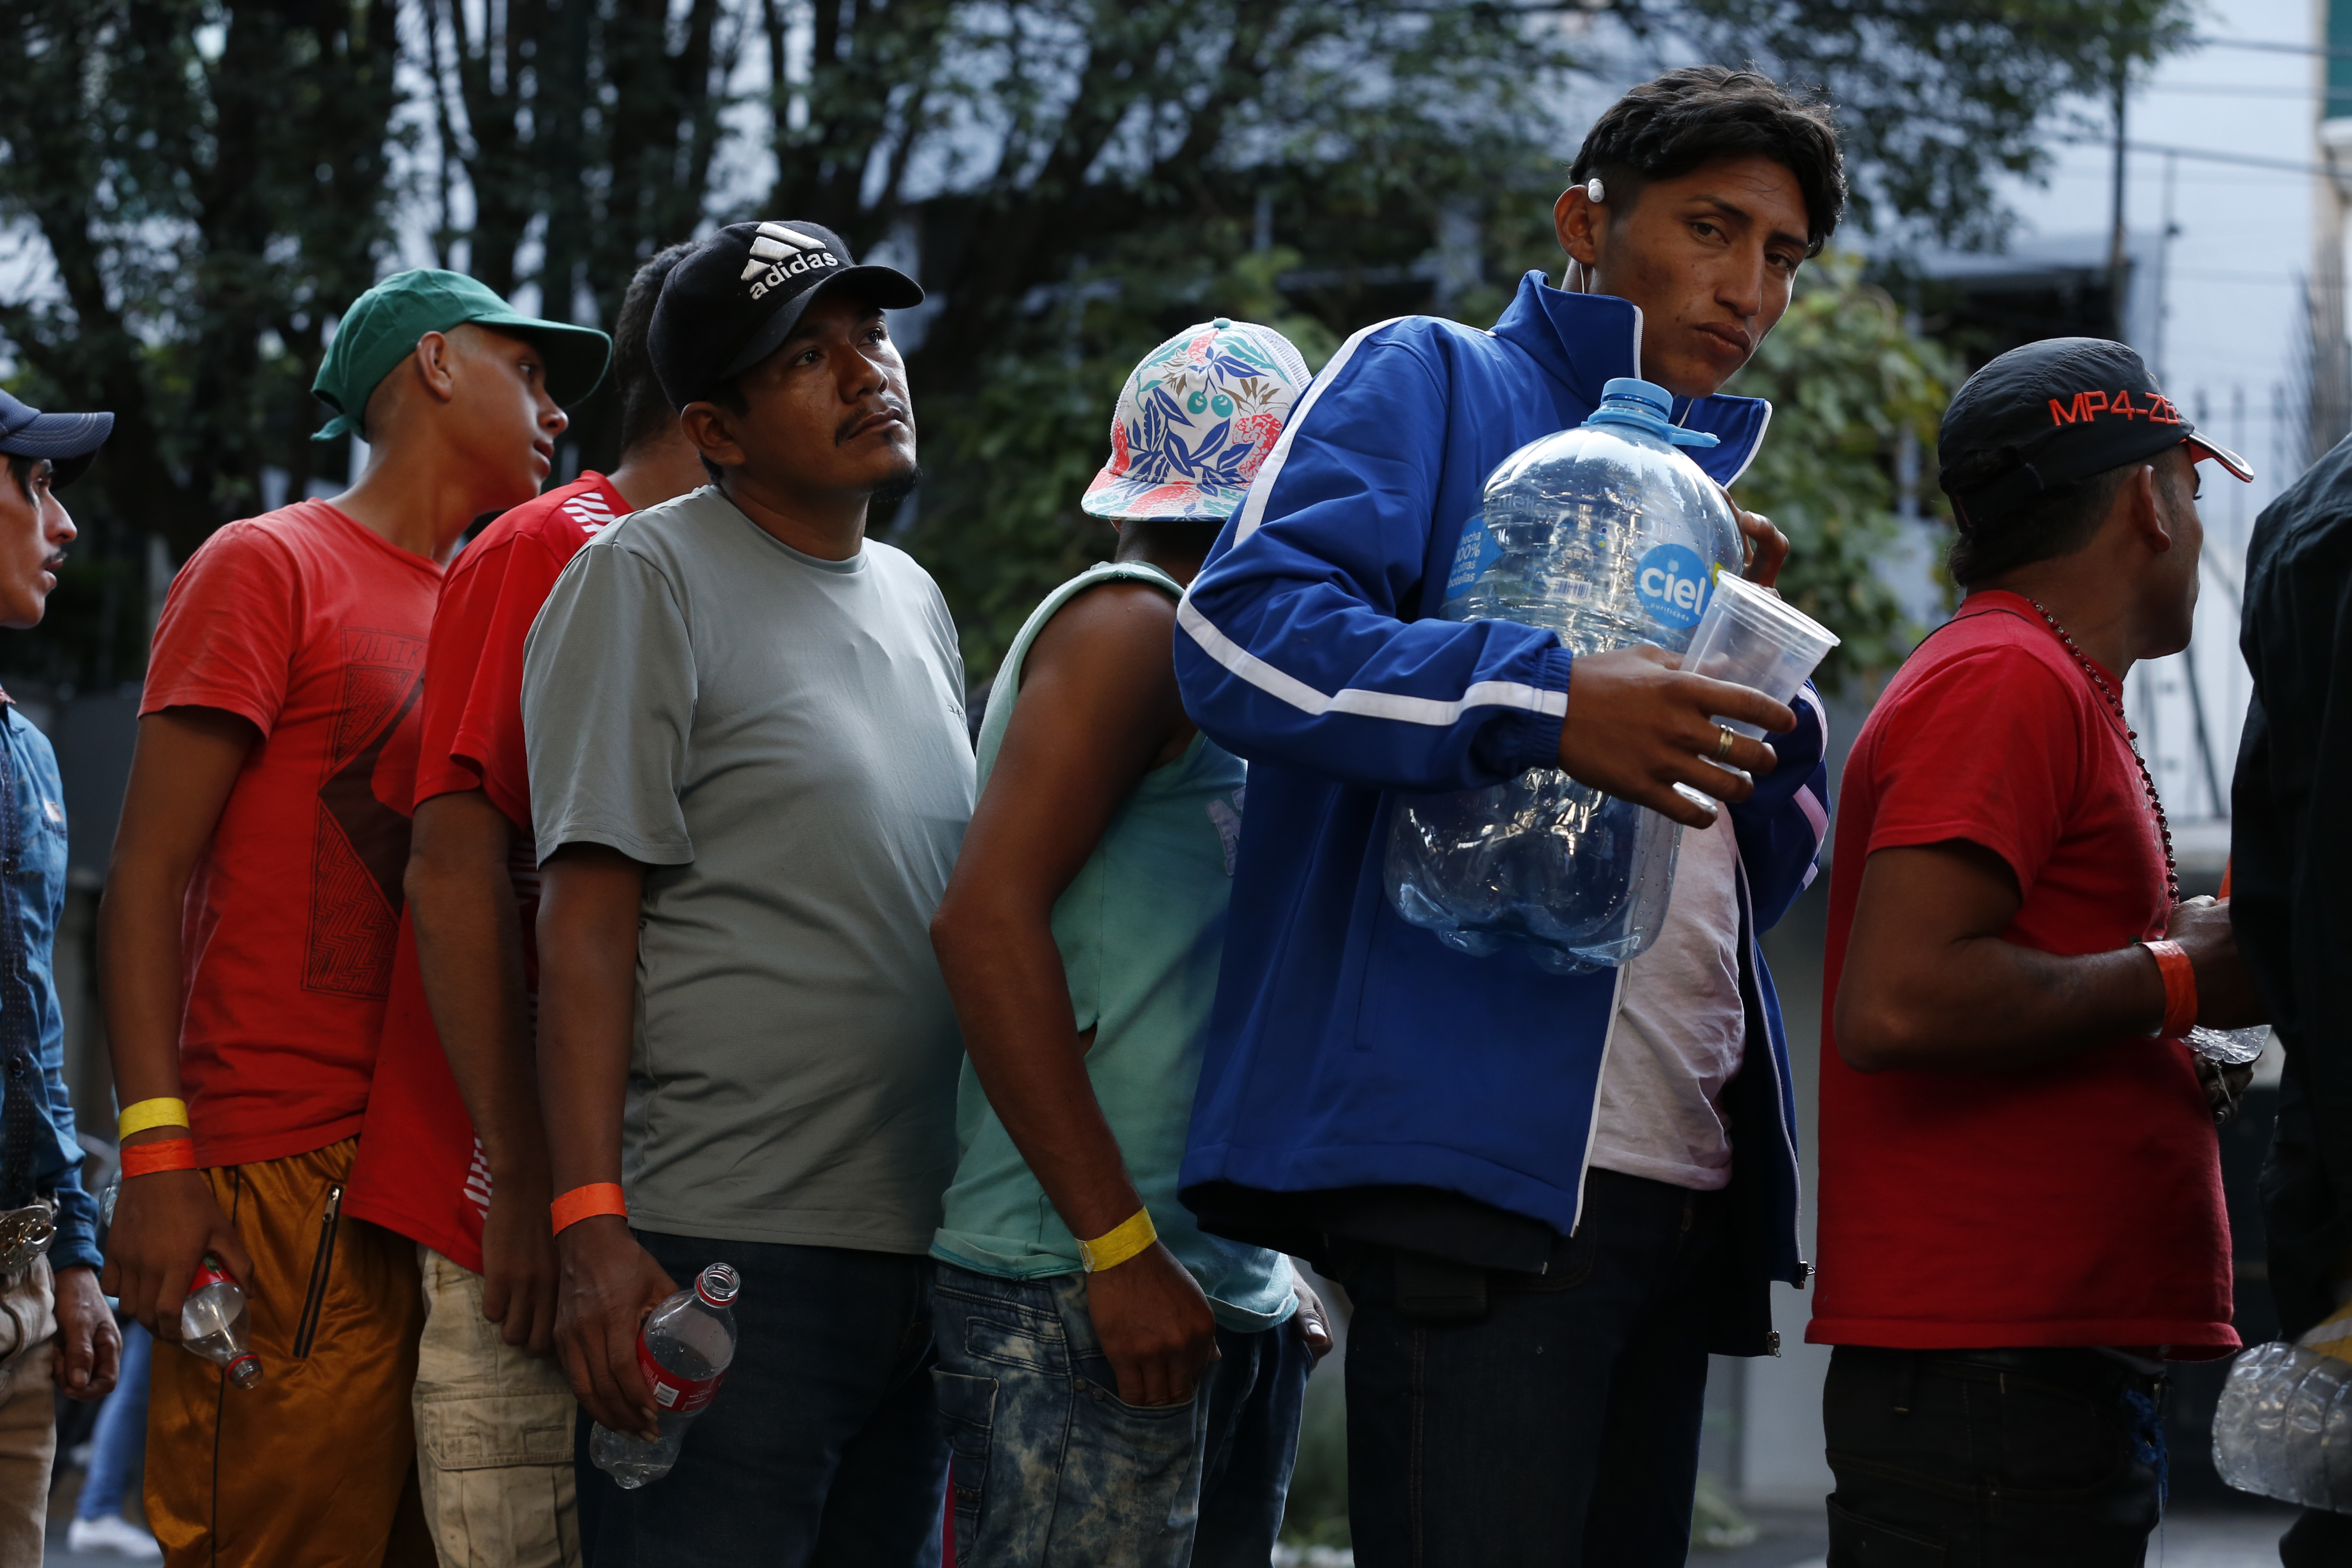 Men line up for donated drinking water, after scores of Central American migrants, representing the thousands participating in a caravan trying to reach the U.S. border, undertook an hours-long march to the office of the United Nations' humans rights body in Mexico City, Thursday, Nov. 8, 2018. Members of the caravan which has stopped in Mexico City demanded buses to take them to the U.S. border, saying it is too cold and dangerous to continue walking and hitchhiking.(AP Photo/Rebecca Blackwell)